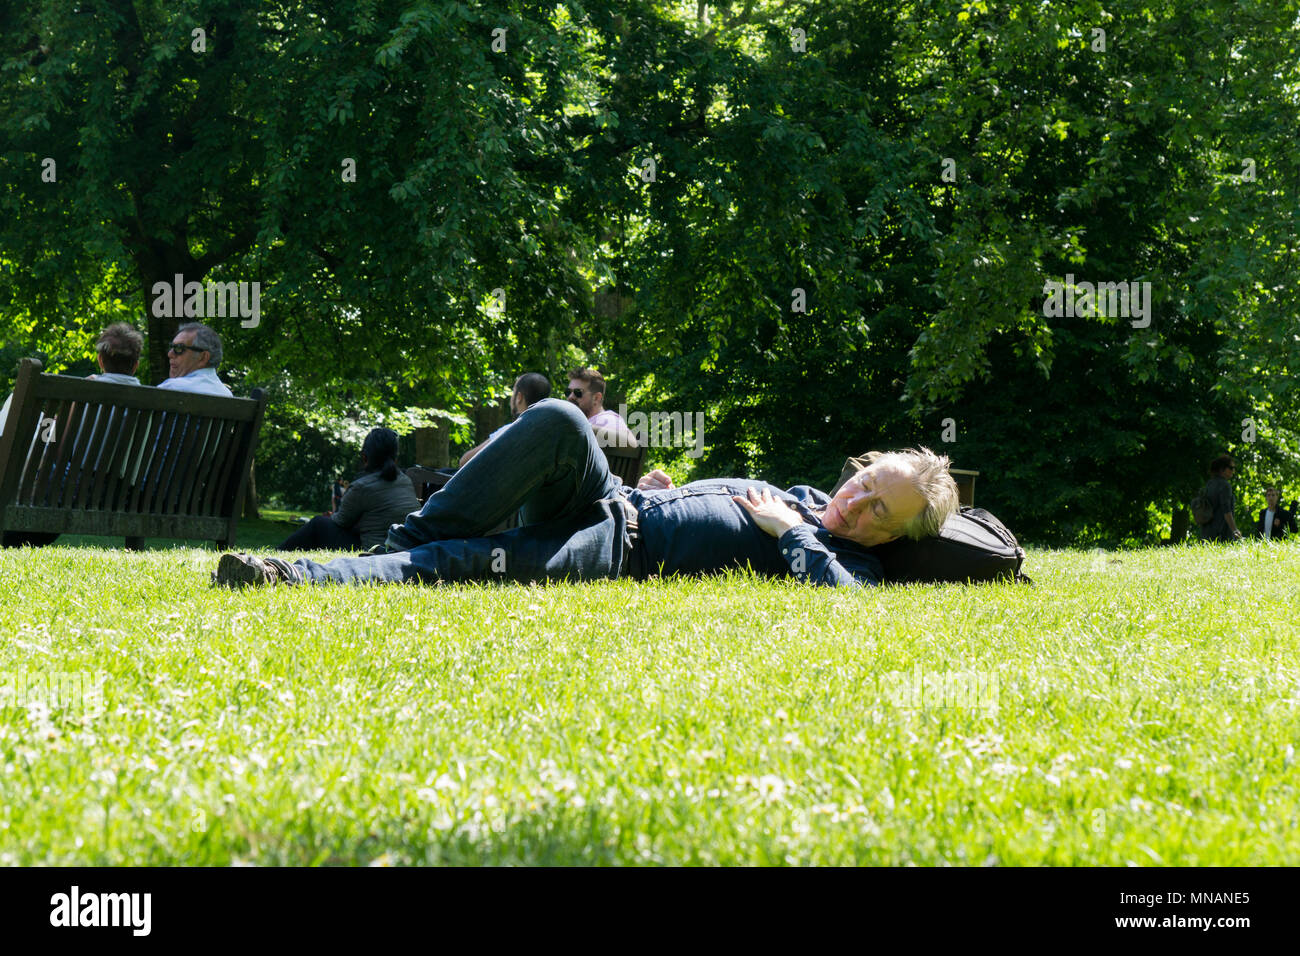 London, UK. 15th May 2018. People enjoy the hot sunny weather in Central London by relaxing in the parks Credit: Ink Drop/Alamy Live News - Stock Image